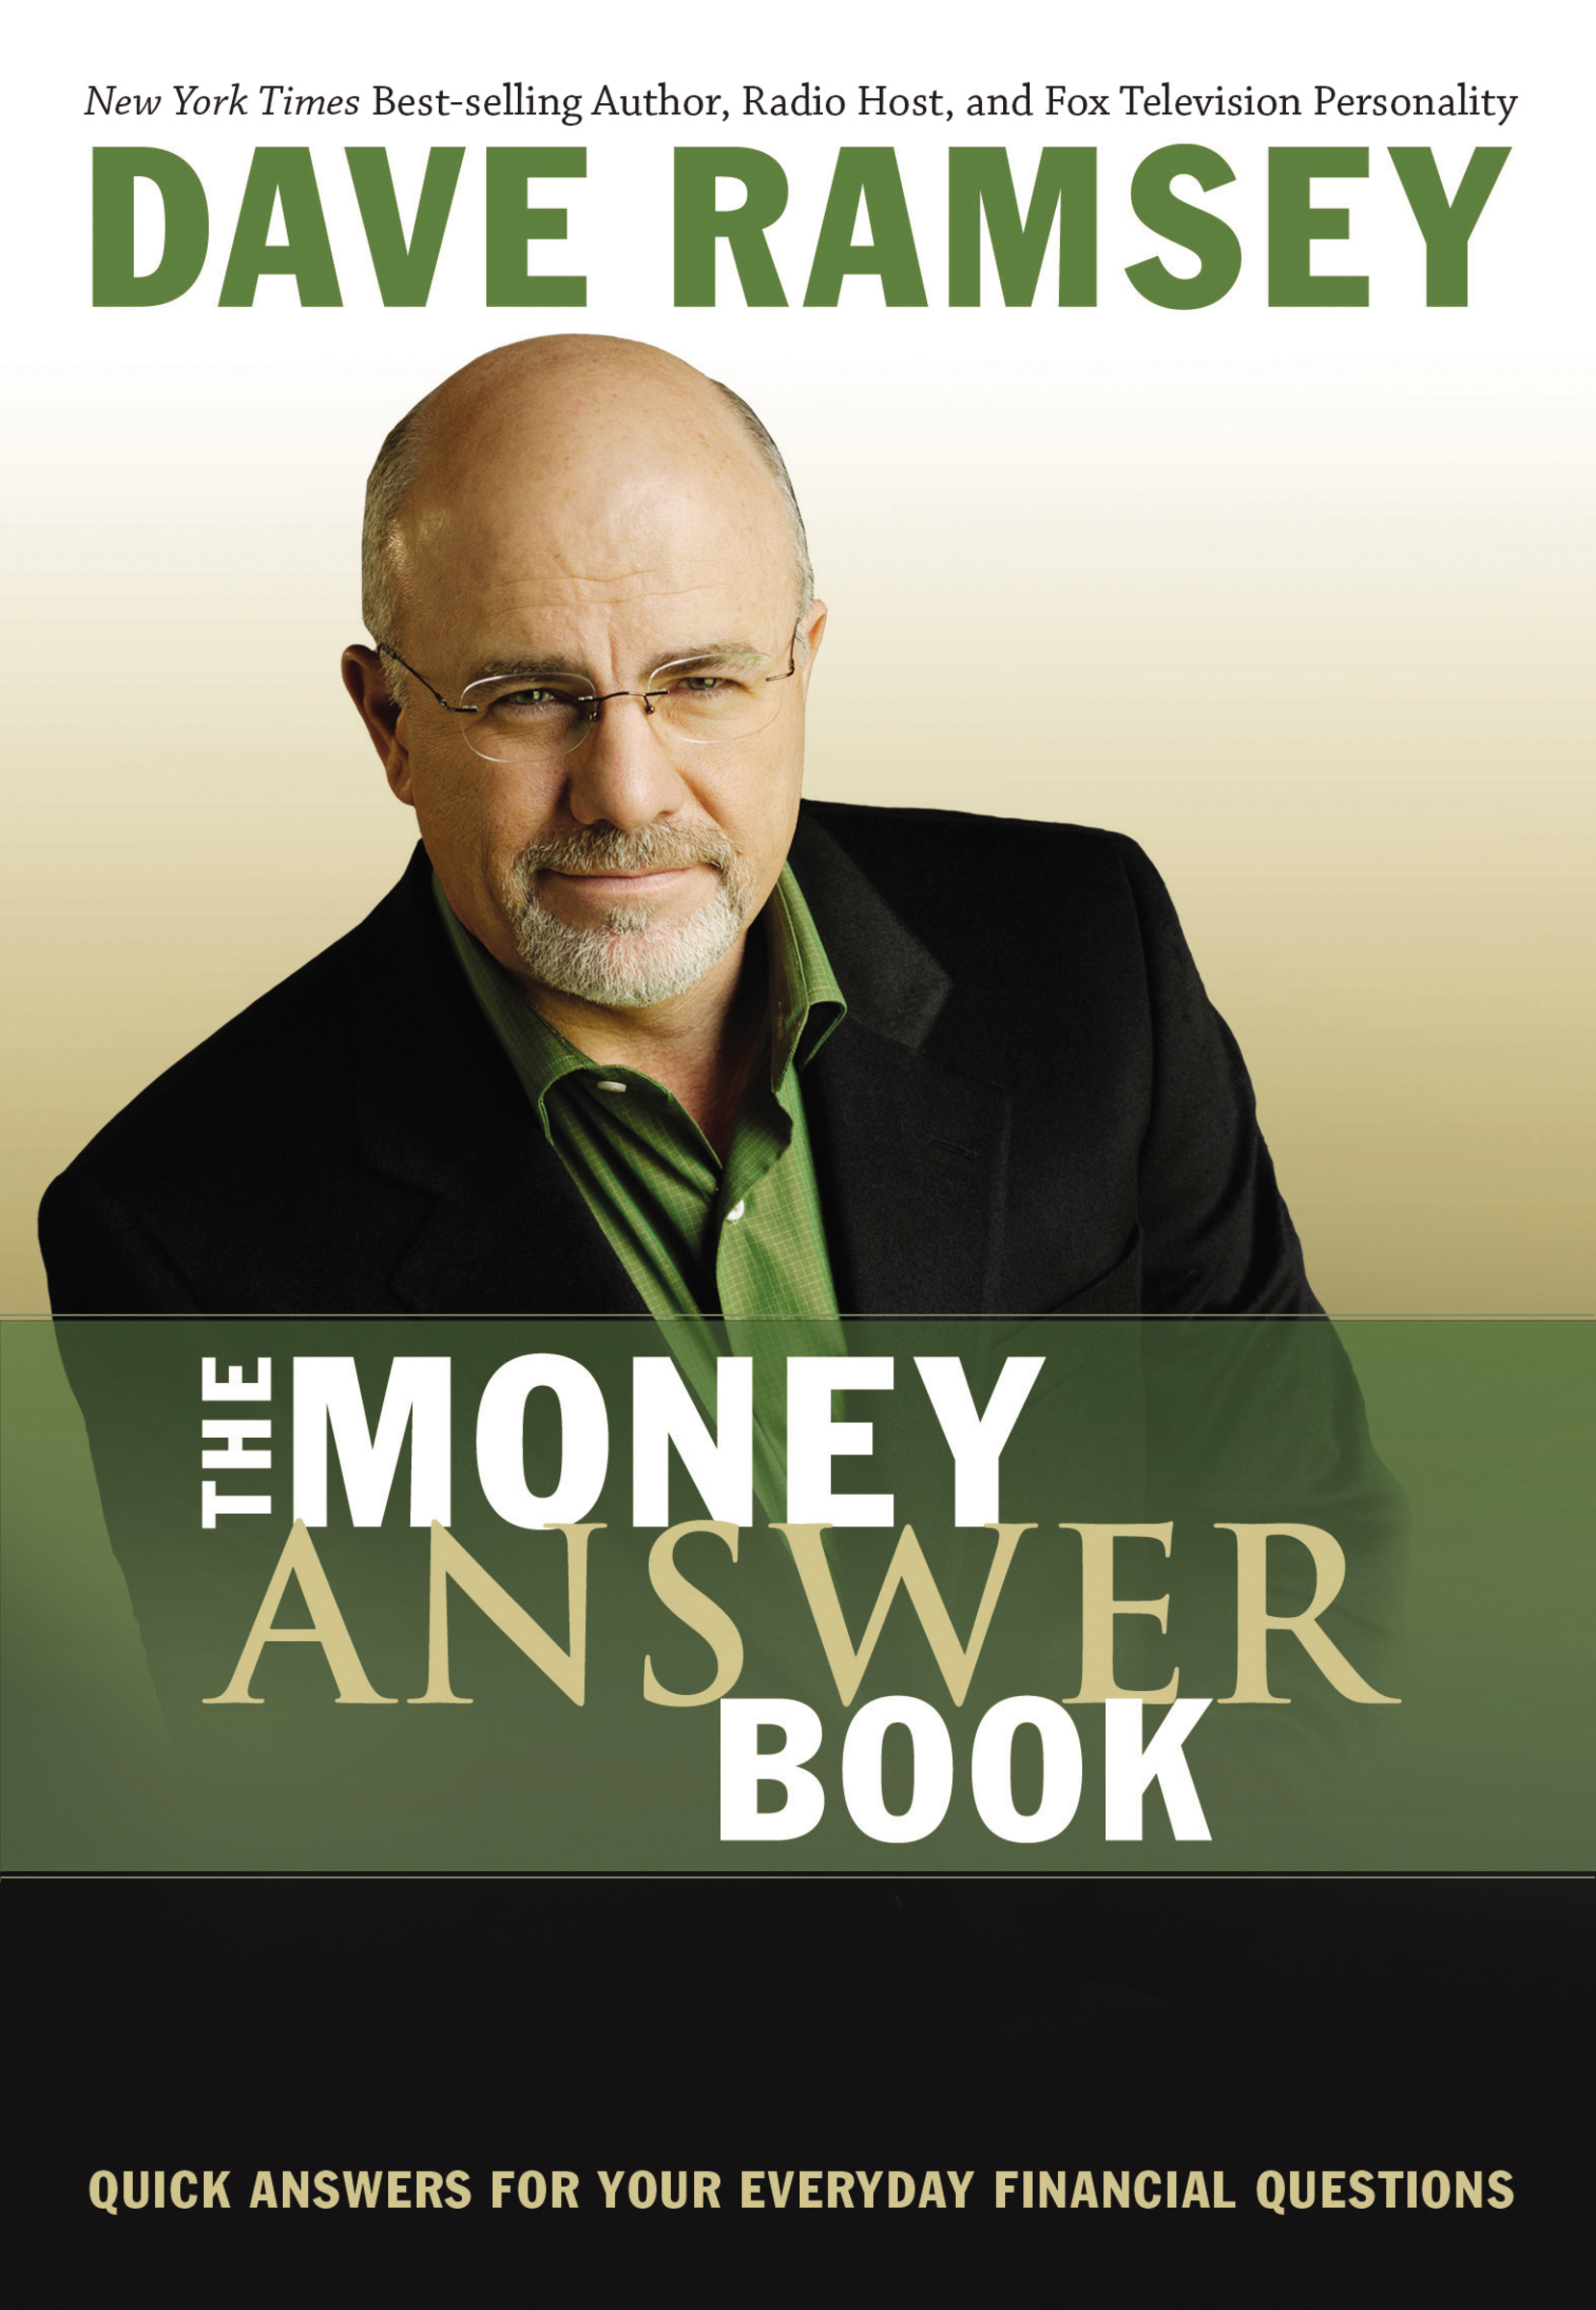 The money answer book : quick answers to your everyday financial questions